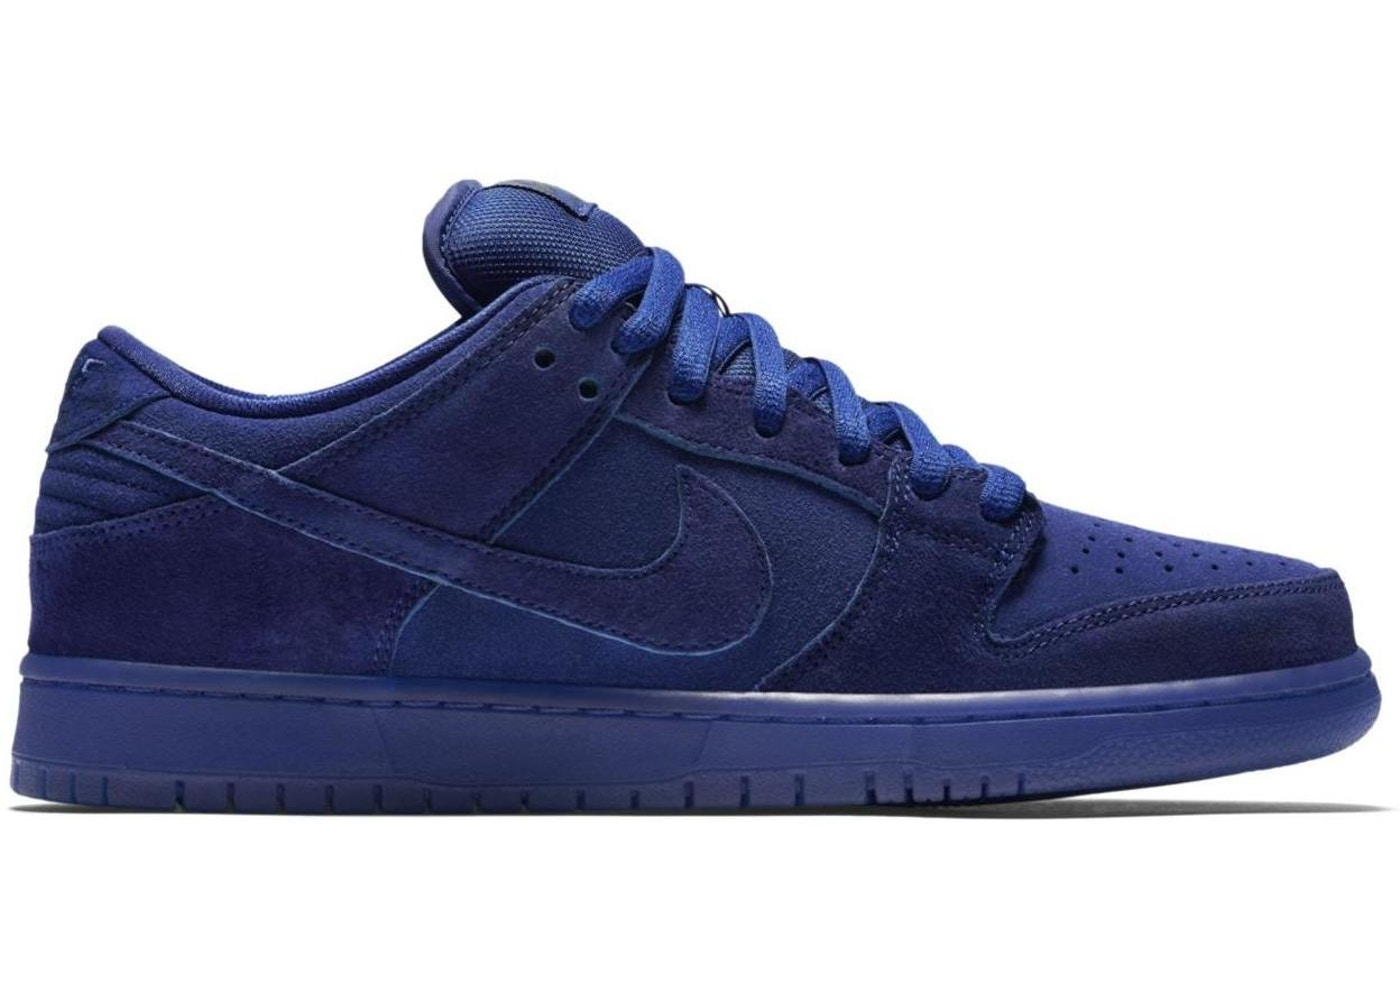 b999b5bec56e Nike Dunk SB Low Blue Moon - 313170-444